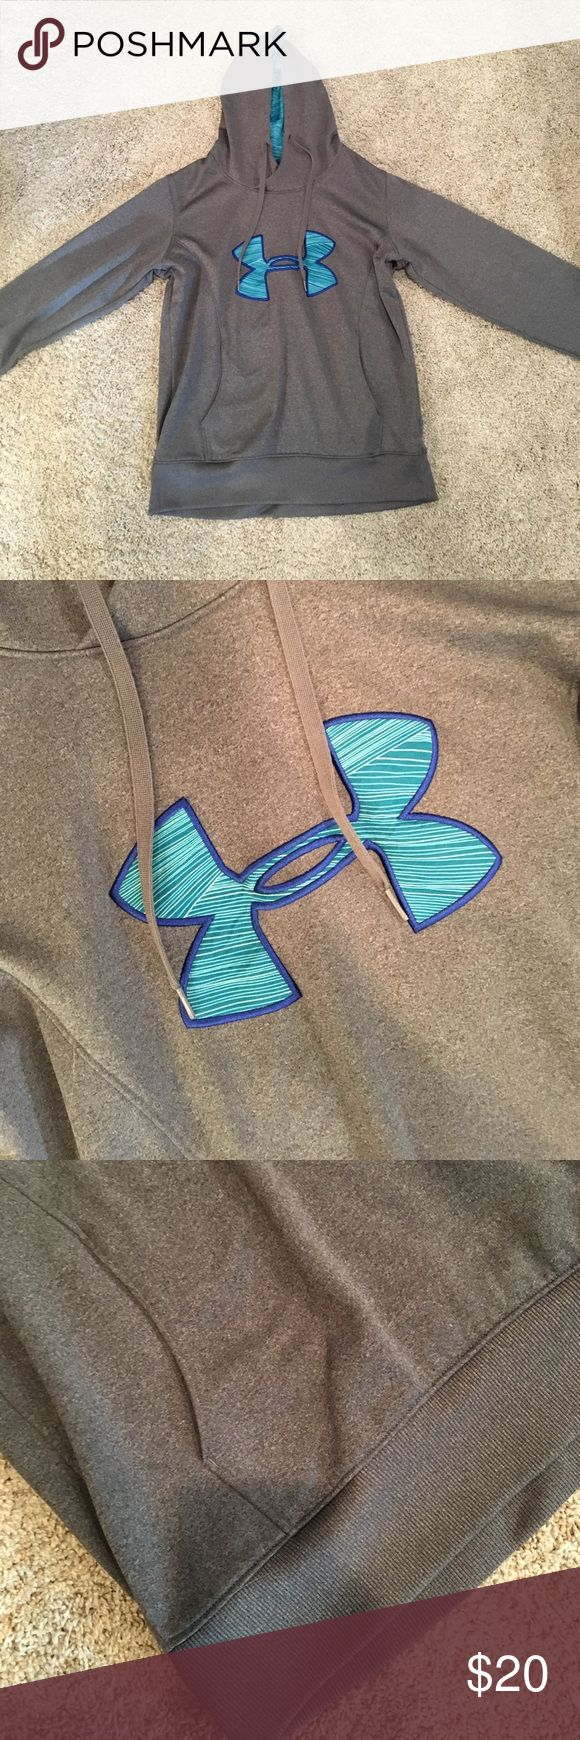 Under Armour Sweatshirt Lightly worn but so adorable!! Perfect for chilly weather! Under Armour Tops Sweatshirts & Hoodies